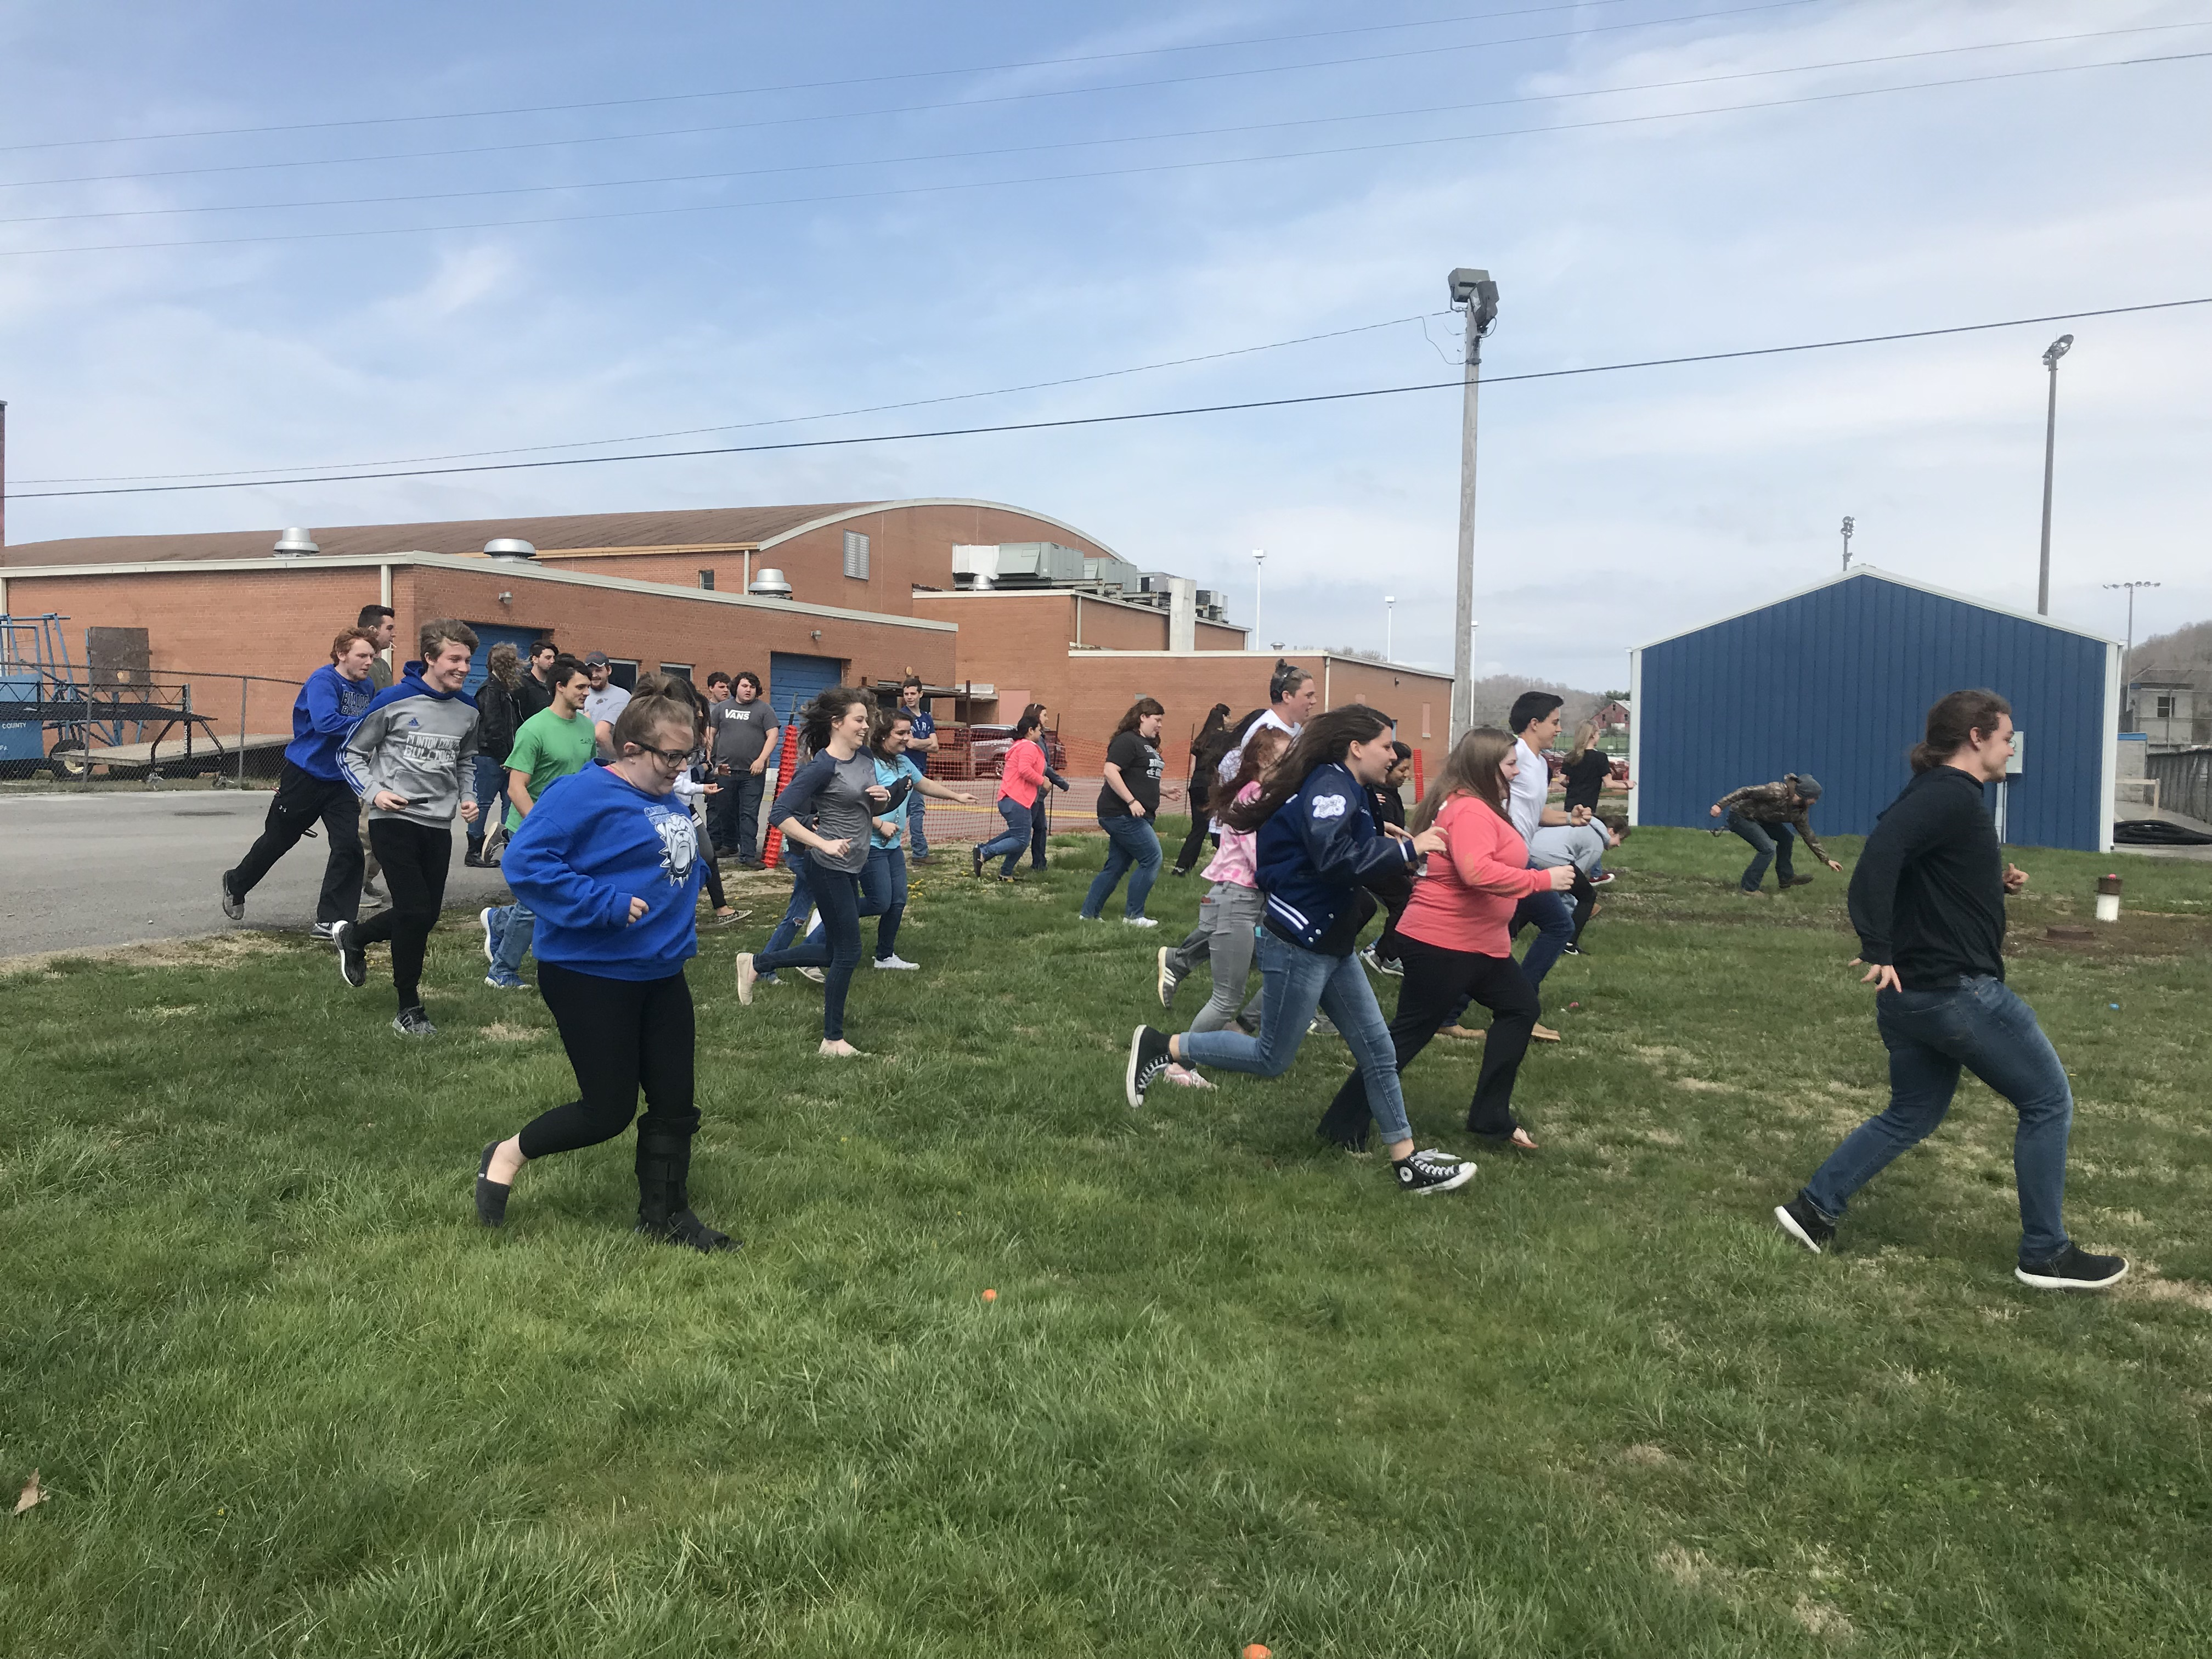 Clinton County High School students who are College and Career Ready were rewarded with an Easter luncheon and Egg Hunt on March 27th.